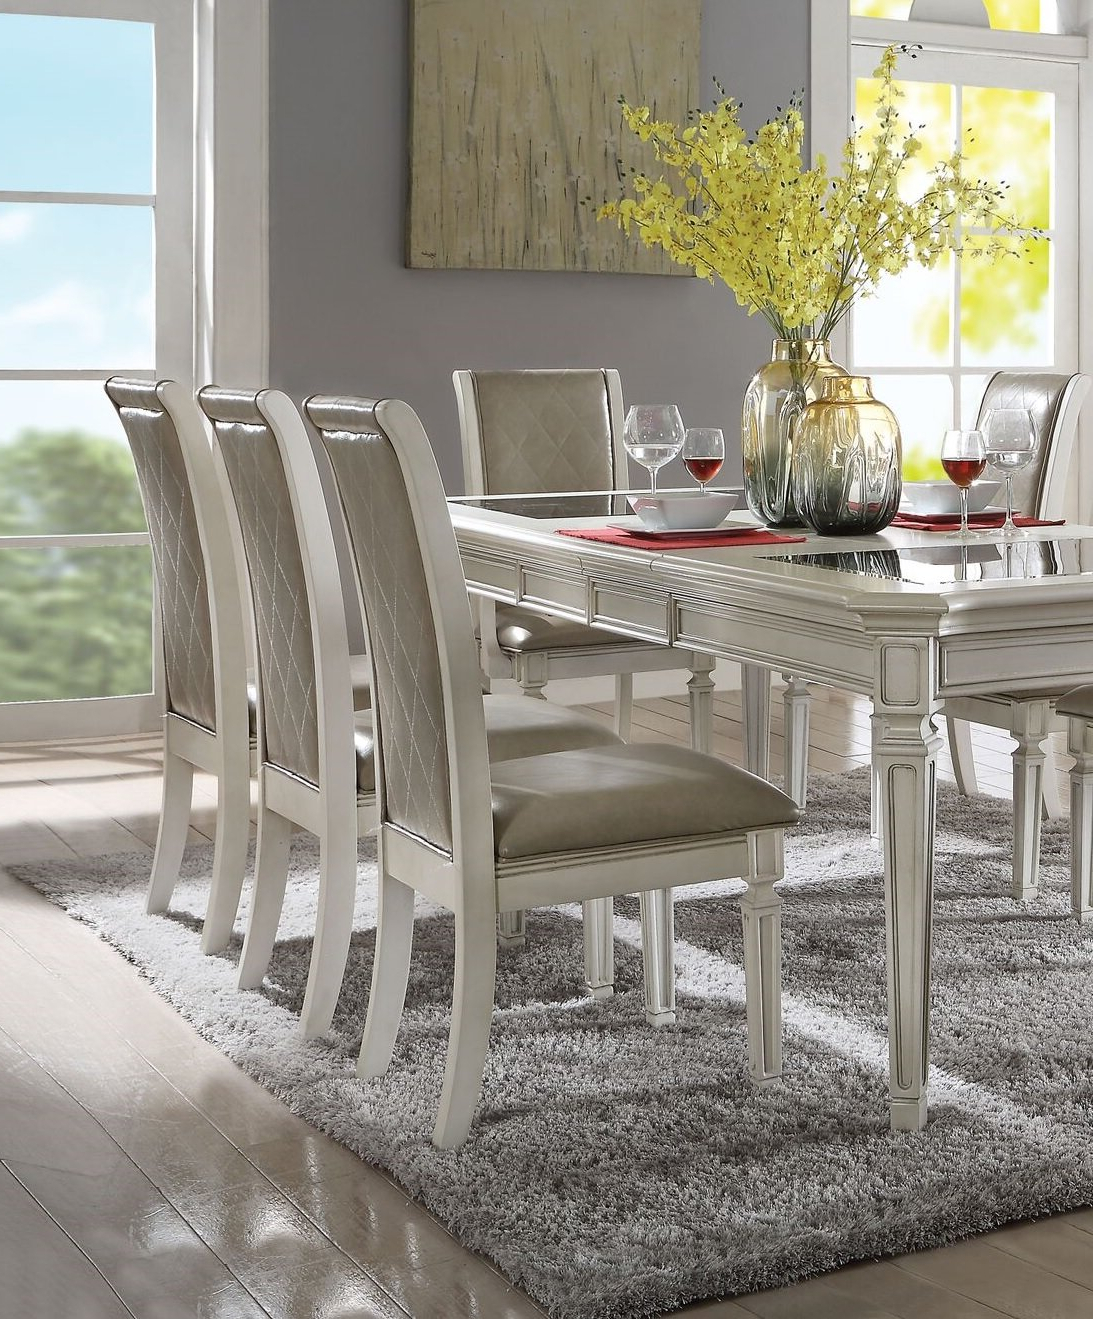 Fashionable Lamotte Upholstered Dining Chair For Lamotte 5 Piece Dining Sets (Gallery 10 of 20)